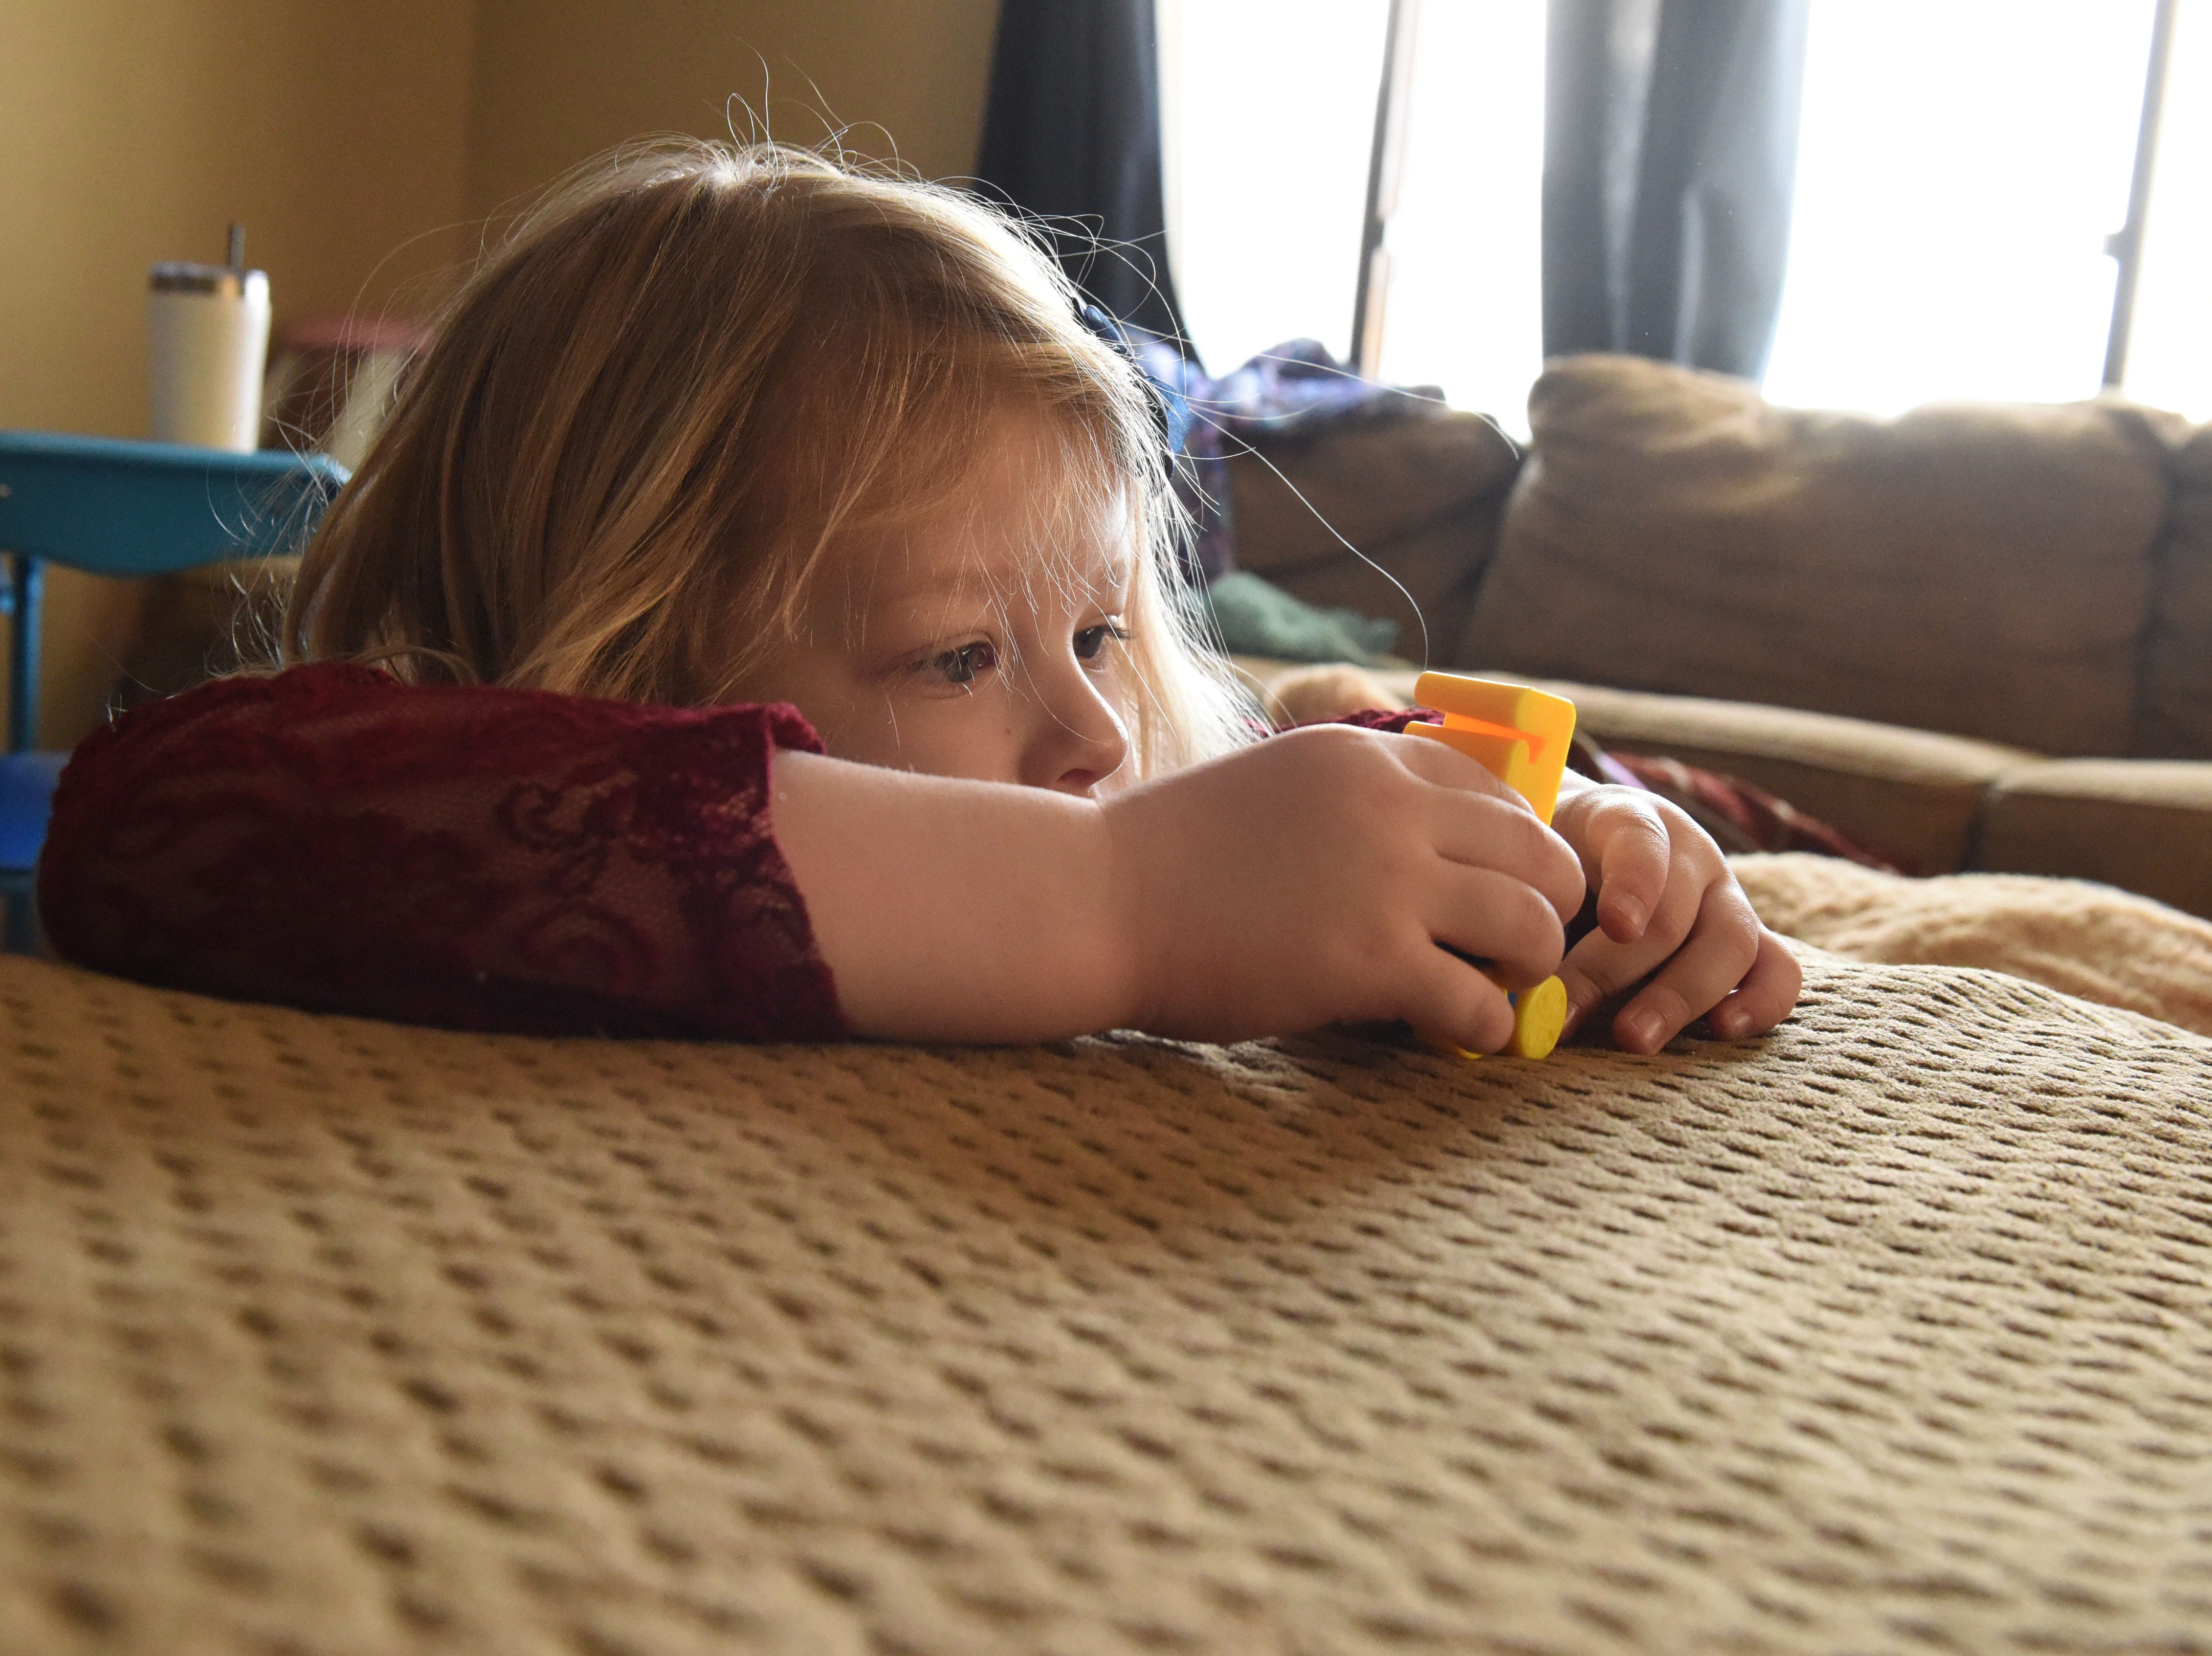 Nikole Trull, 4, plays around her living room in Sioux Falls, S.D., Friday, Feb. 1, 2019.